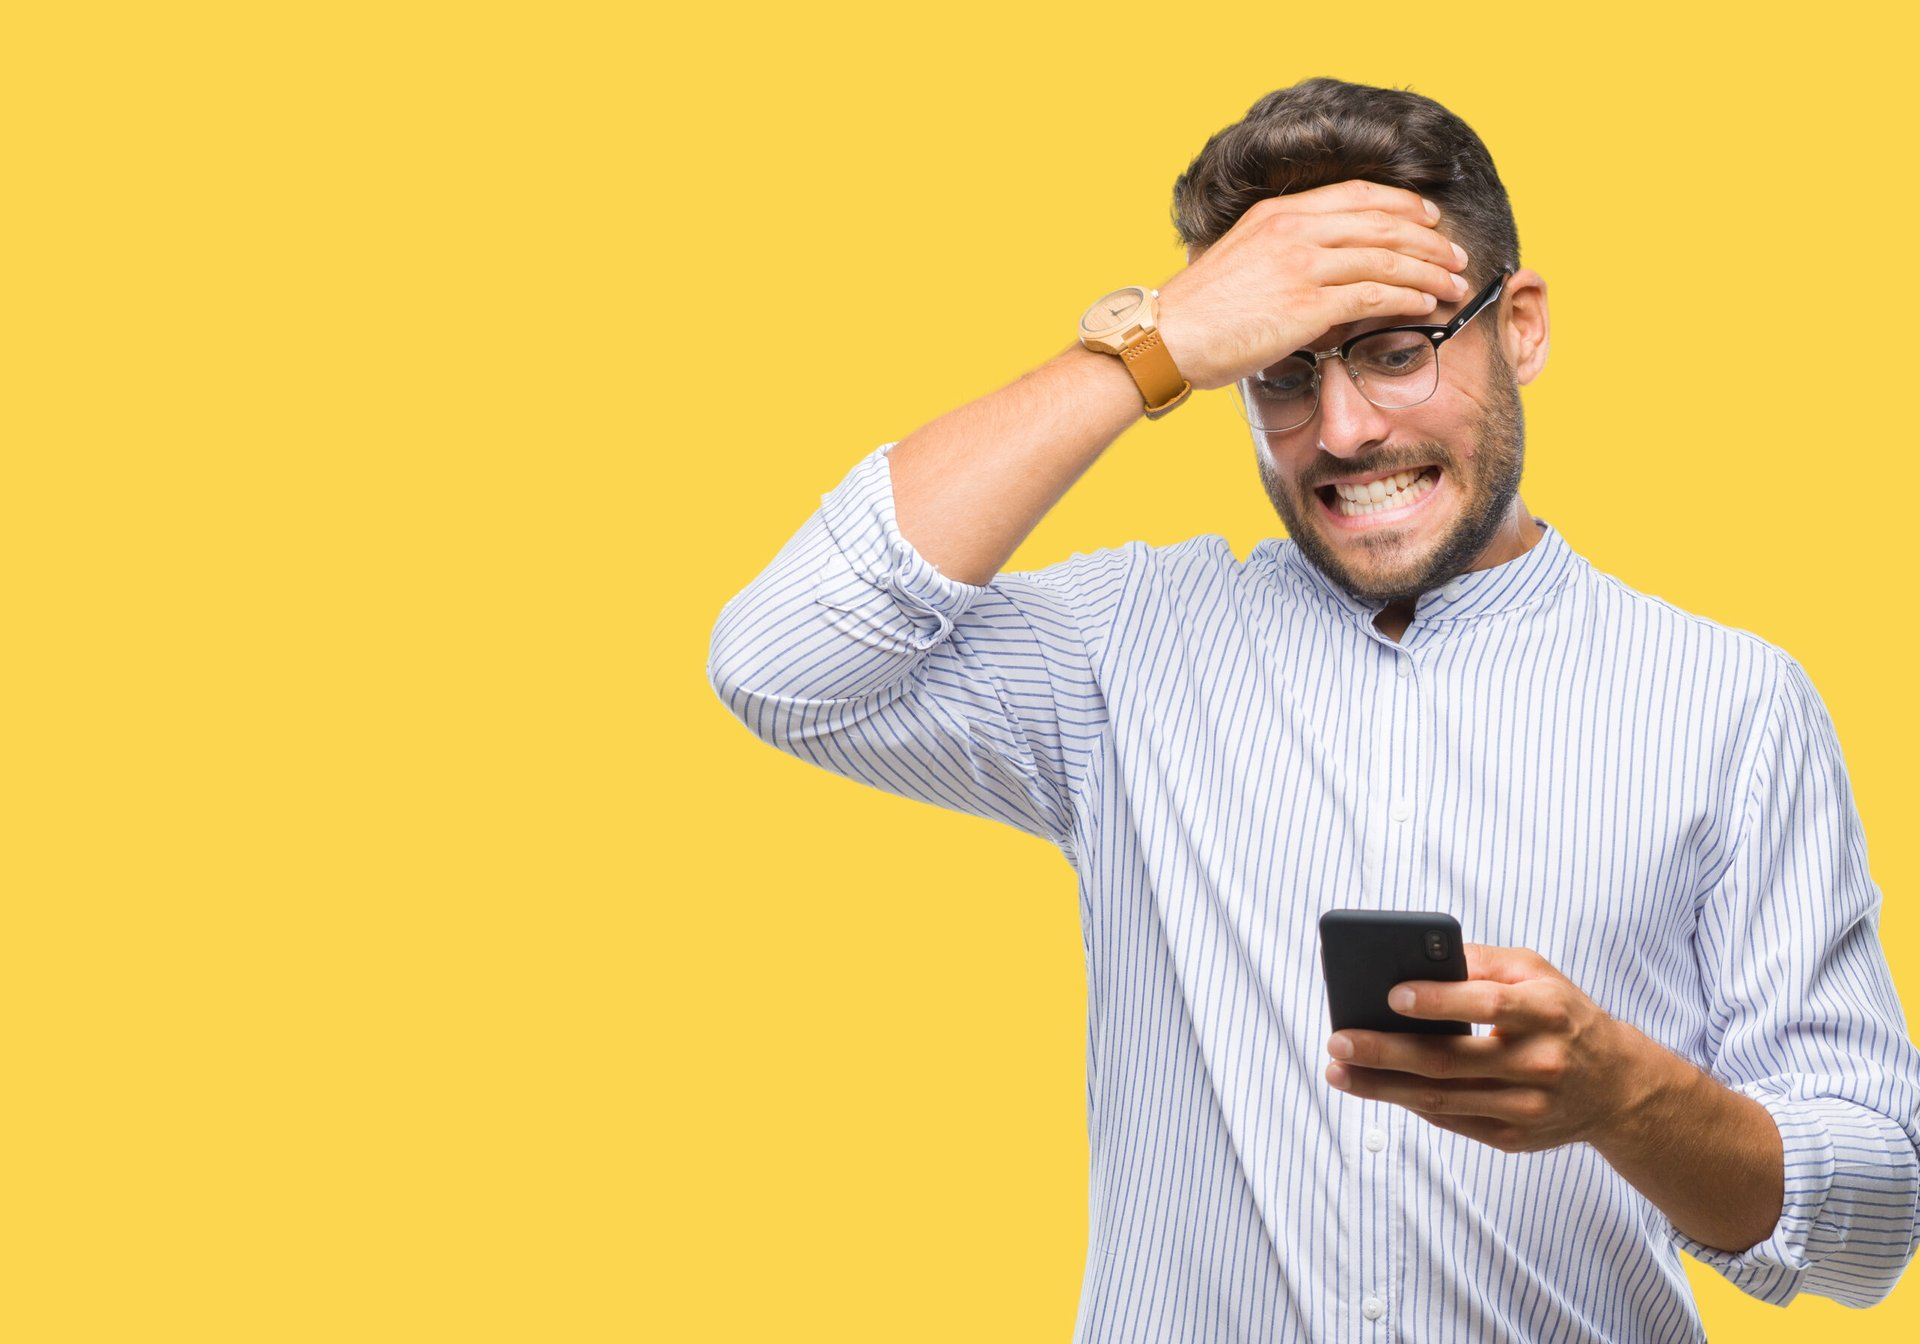 Man freaking out about his phone bill and worried or upset